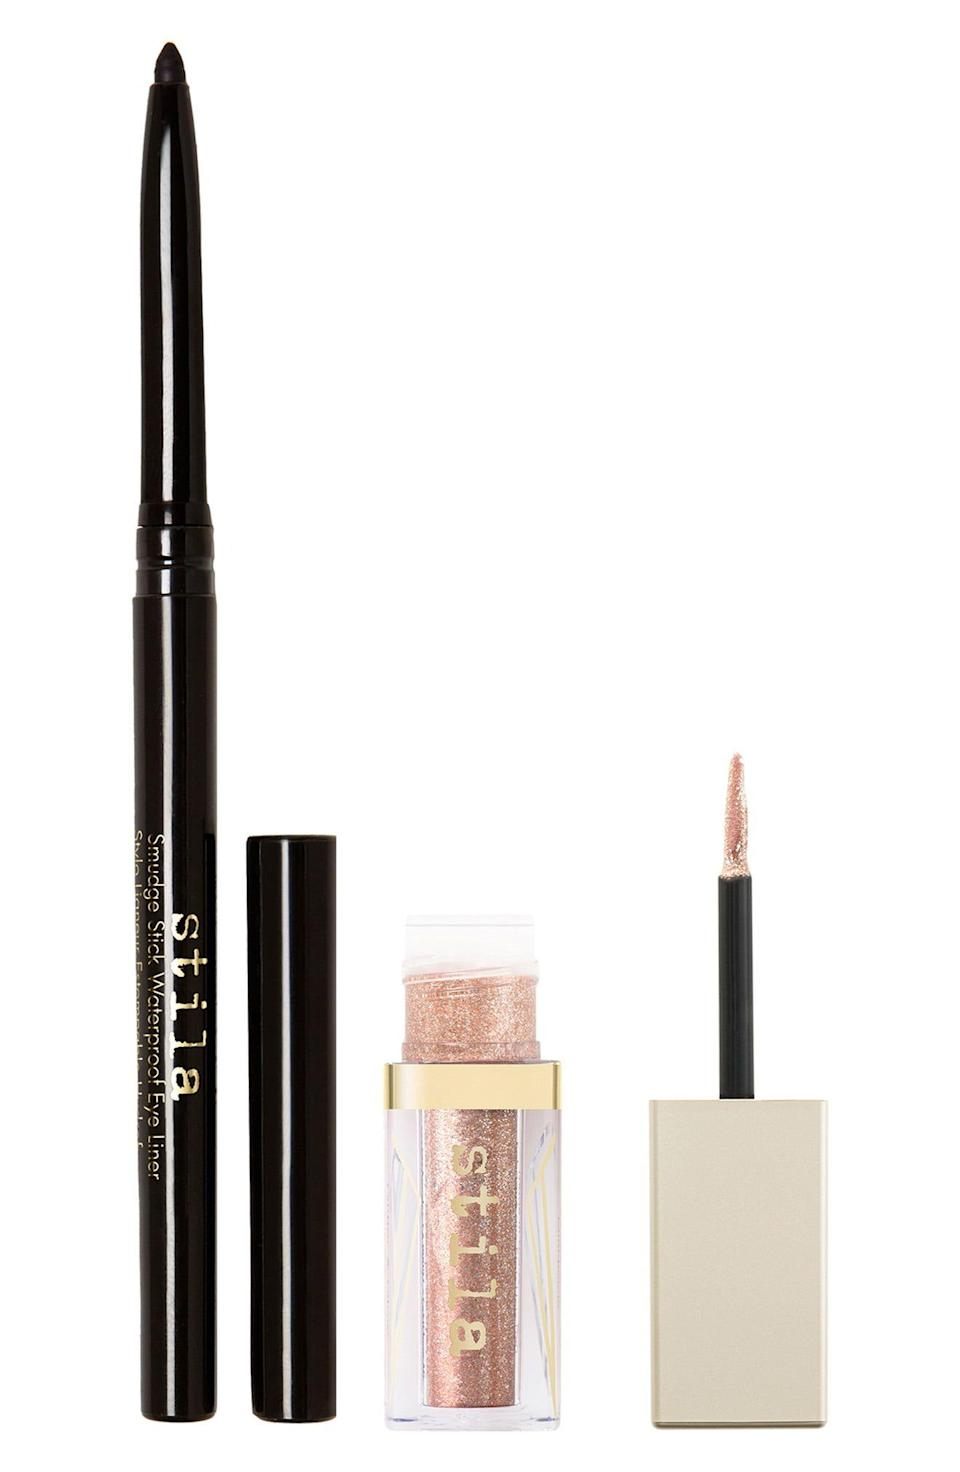 """<p><strong>STILA</strong></p><p>nordstrom.com</p><p><strong>$11.00</strong></p><p><a href=""""https://go.redirectingat.com?id=74968X1596630&url=https%3A%2F%2Fwww.nordstrom.com%2Fs%2Fstila-two-lucky-stars-eye-set-usd-34-value%2F5765744&sref=https%3A%2F%2Fwww.redbookmag.com%2Flife%2Fg34807129%2Fnordstrom-black-friday-cyber-monday-deals-2020%2F"""" rel=""""nofollow noopener"""" target=""""_blank"""" data-ylk=""""slk:Shop Now"""" class=""""link rapid-noclick-resp"""">Shop Now</a></p><p><strong><del>$22</del> $11 (50% off)</strong></p><p>A waterproof eyeliner and eyeshadow duo from Stila at this price is such a good steal. </p>"""